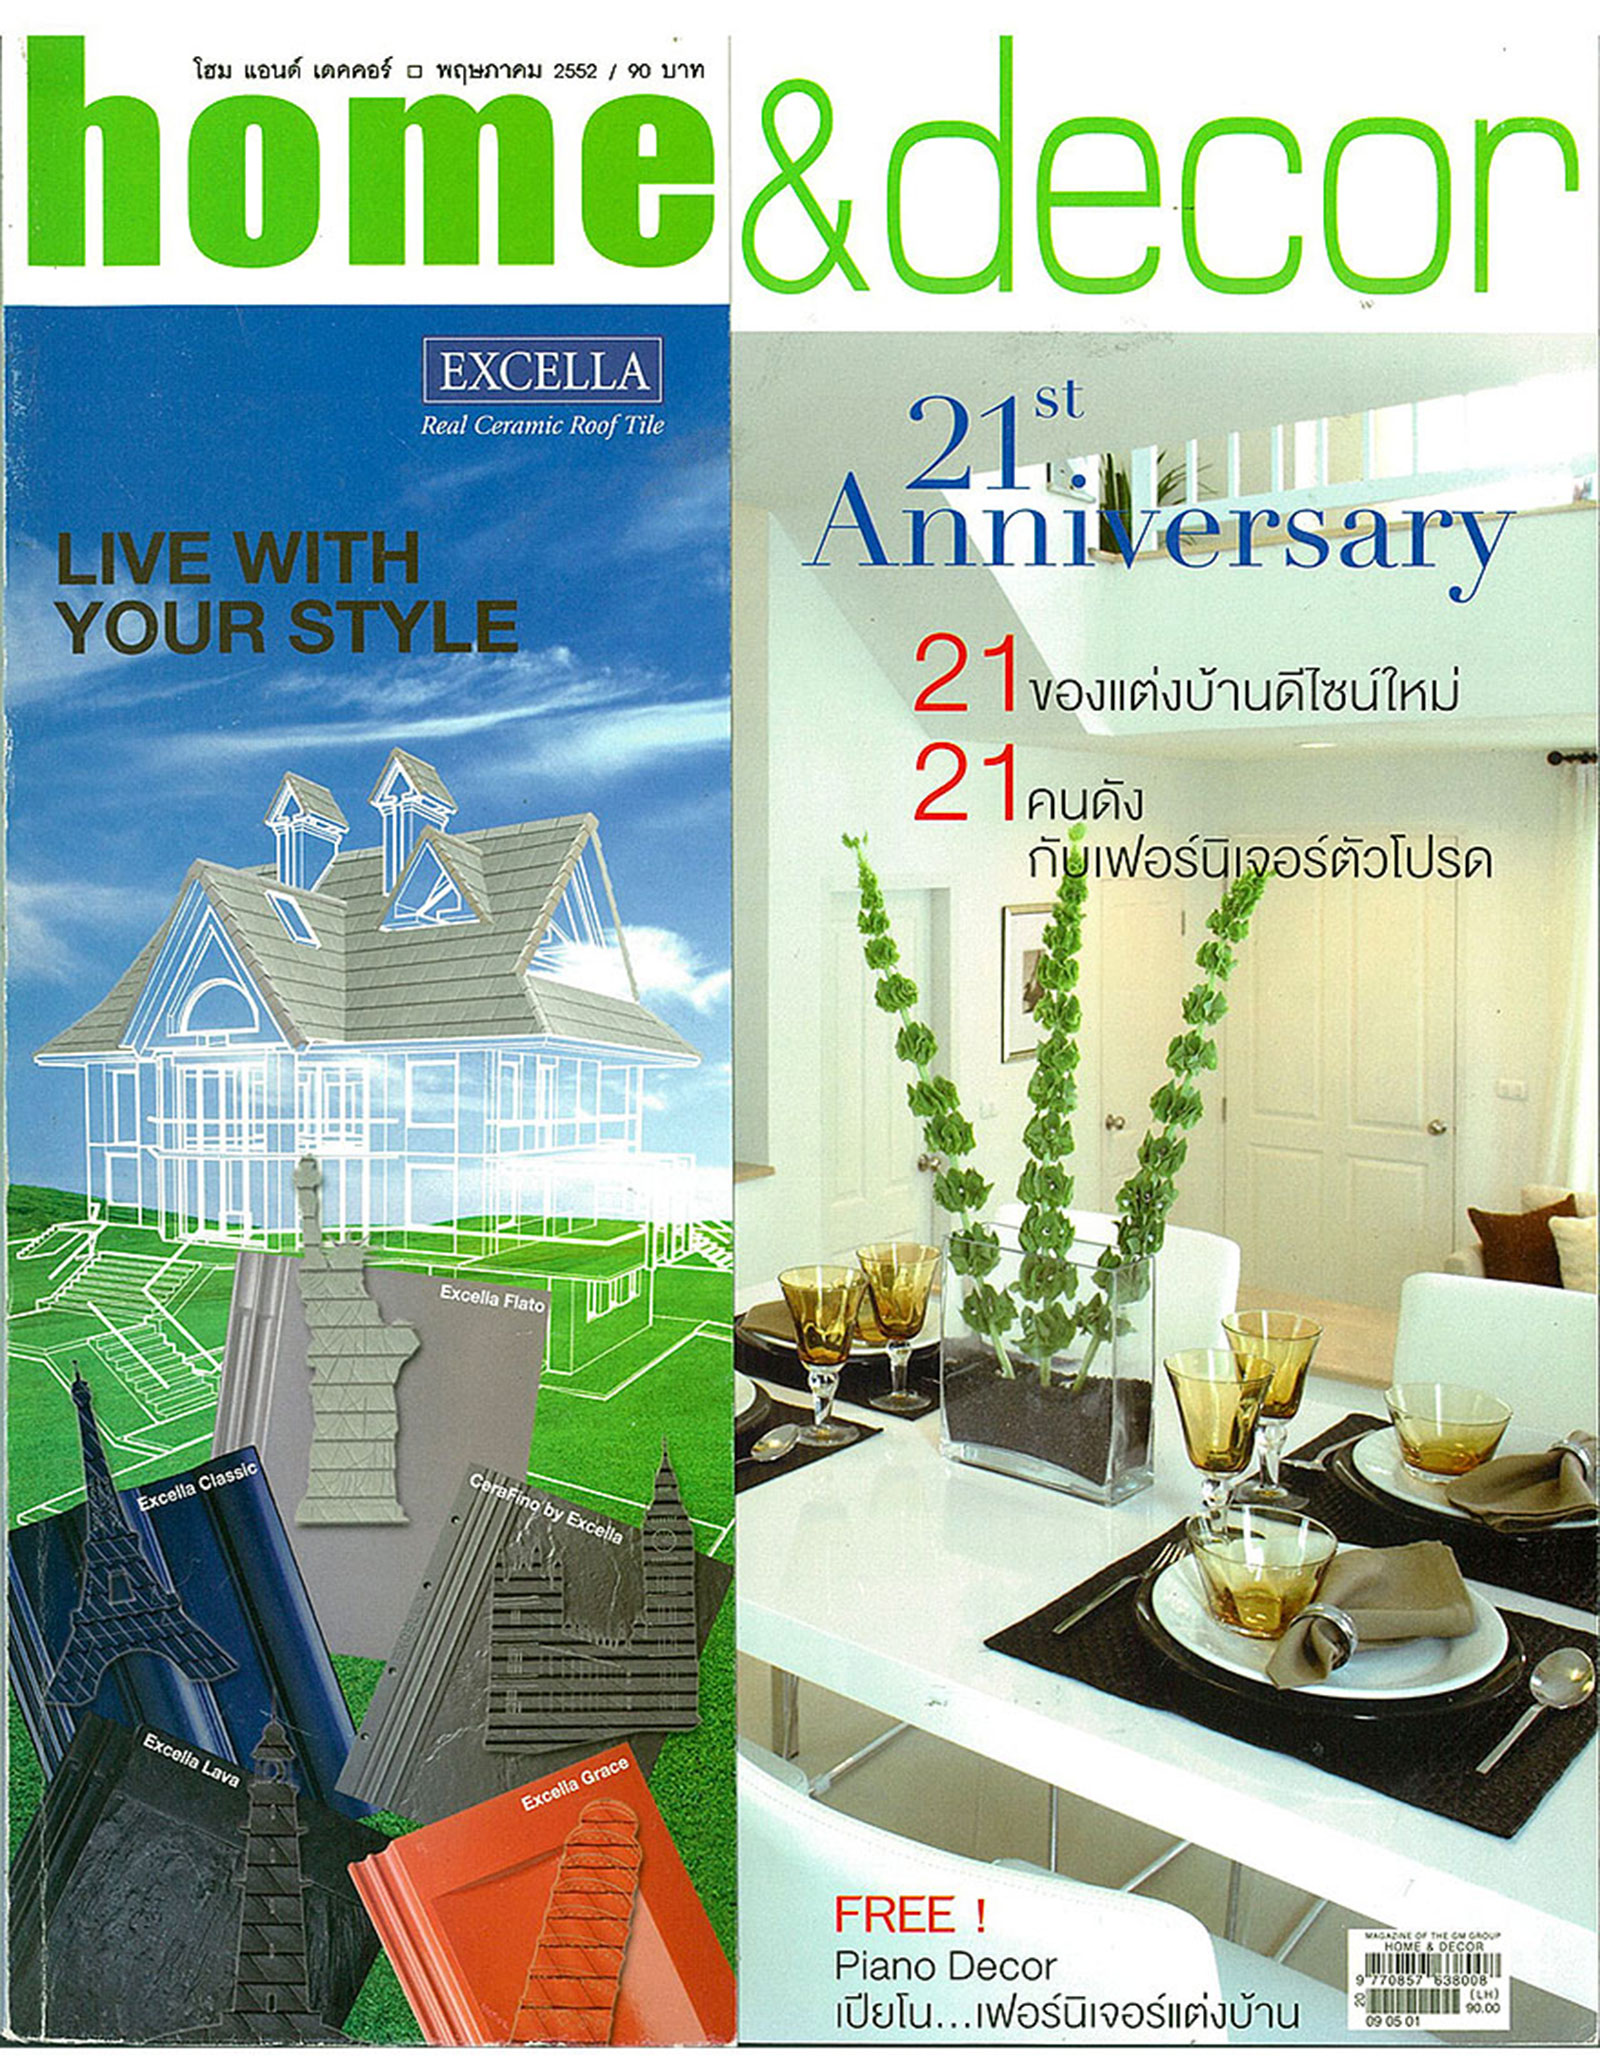 Home&decor2009-MAY01